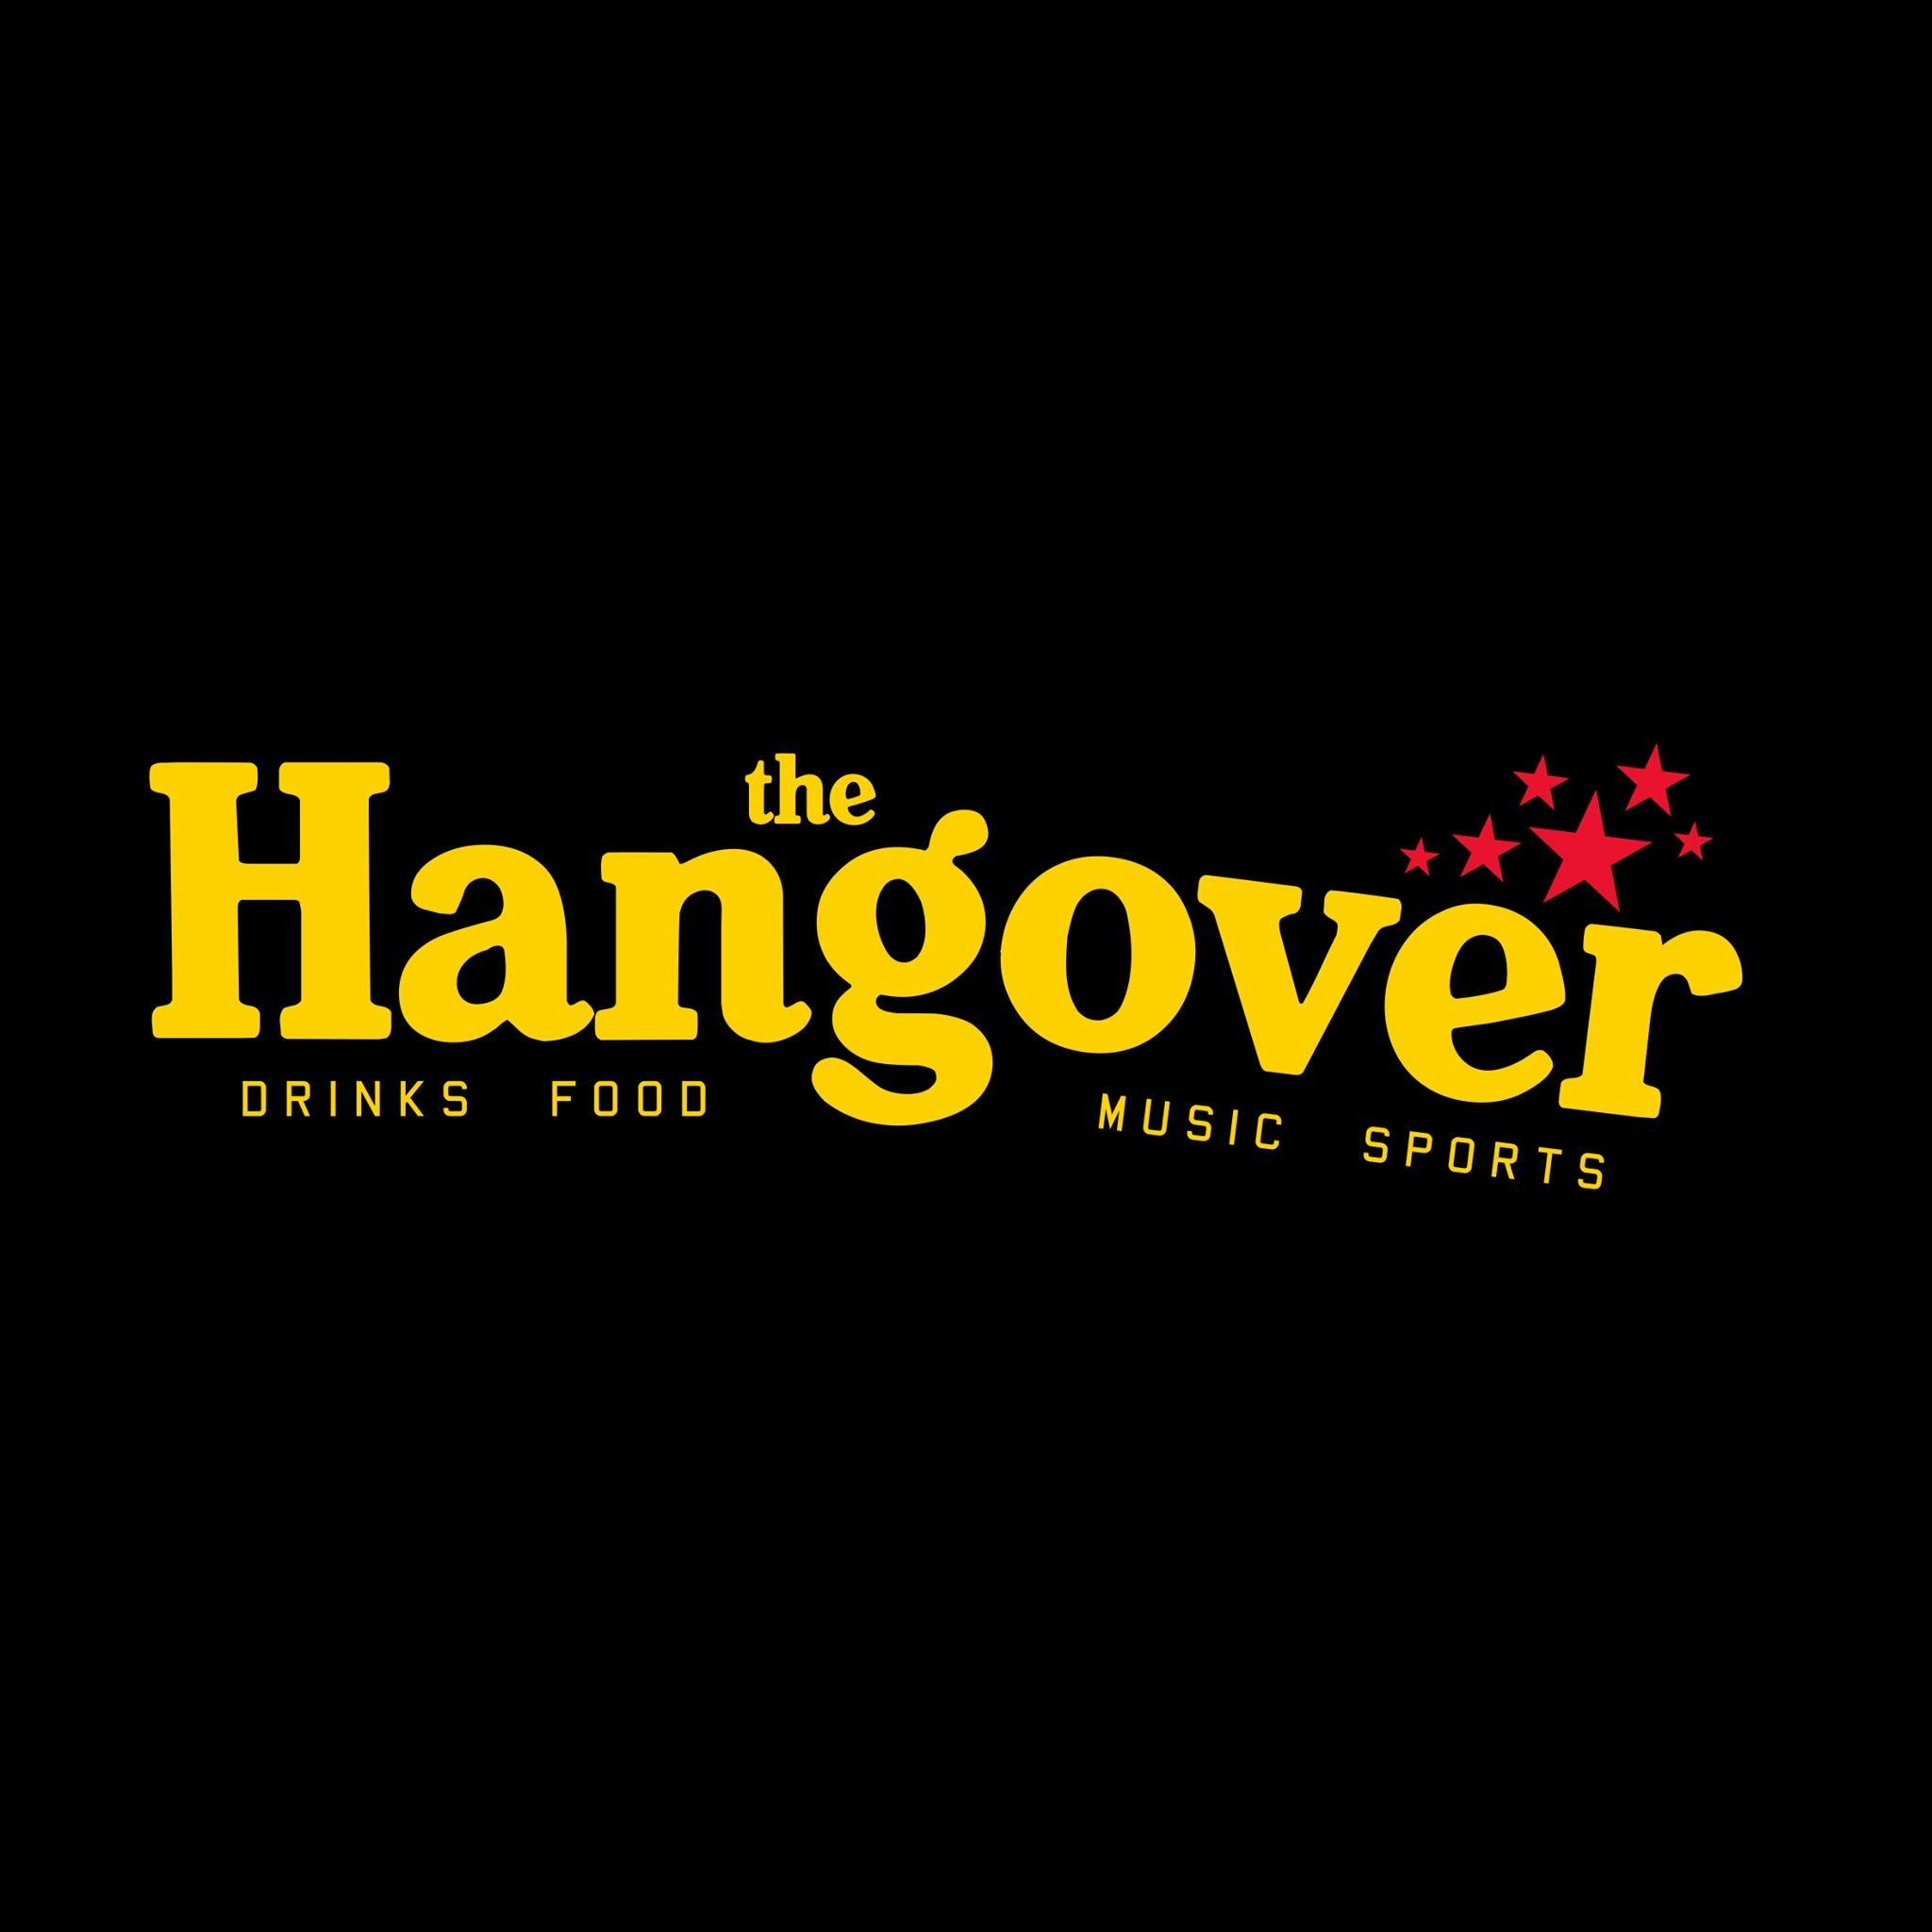 the hangover bangkok